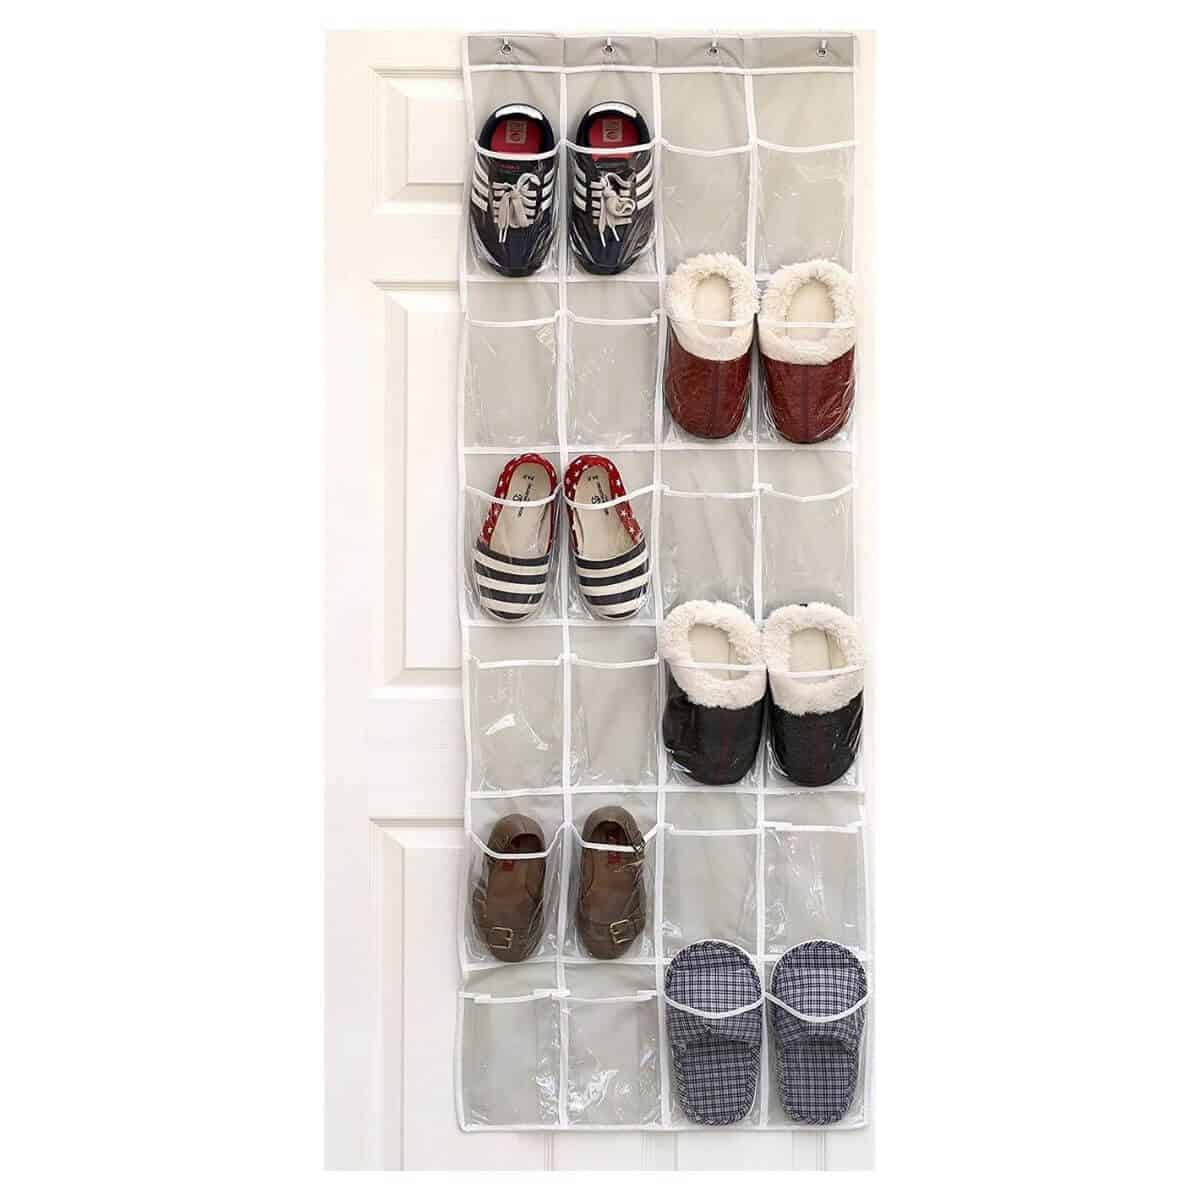 Over-the-door shoe organizer with six pairs in it.